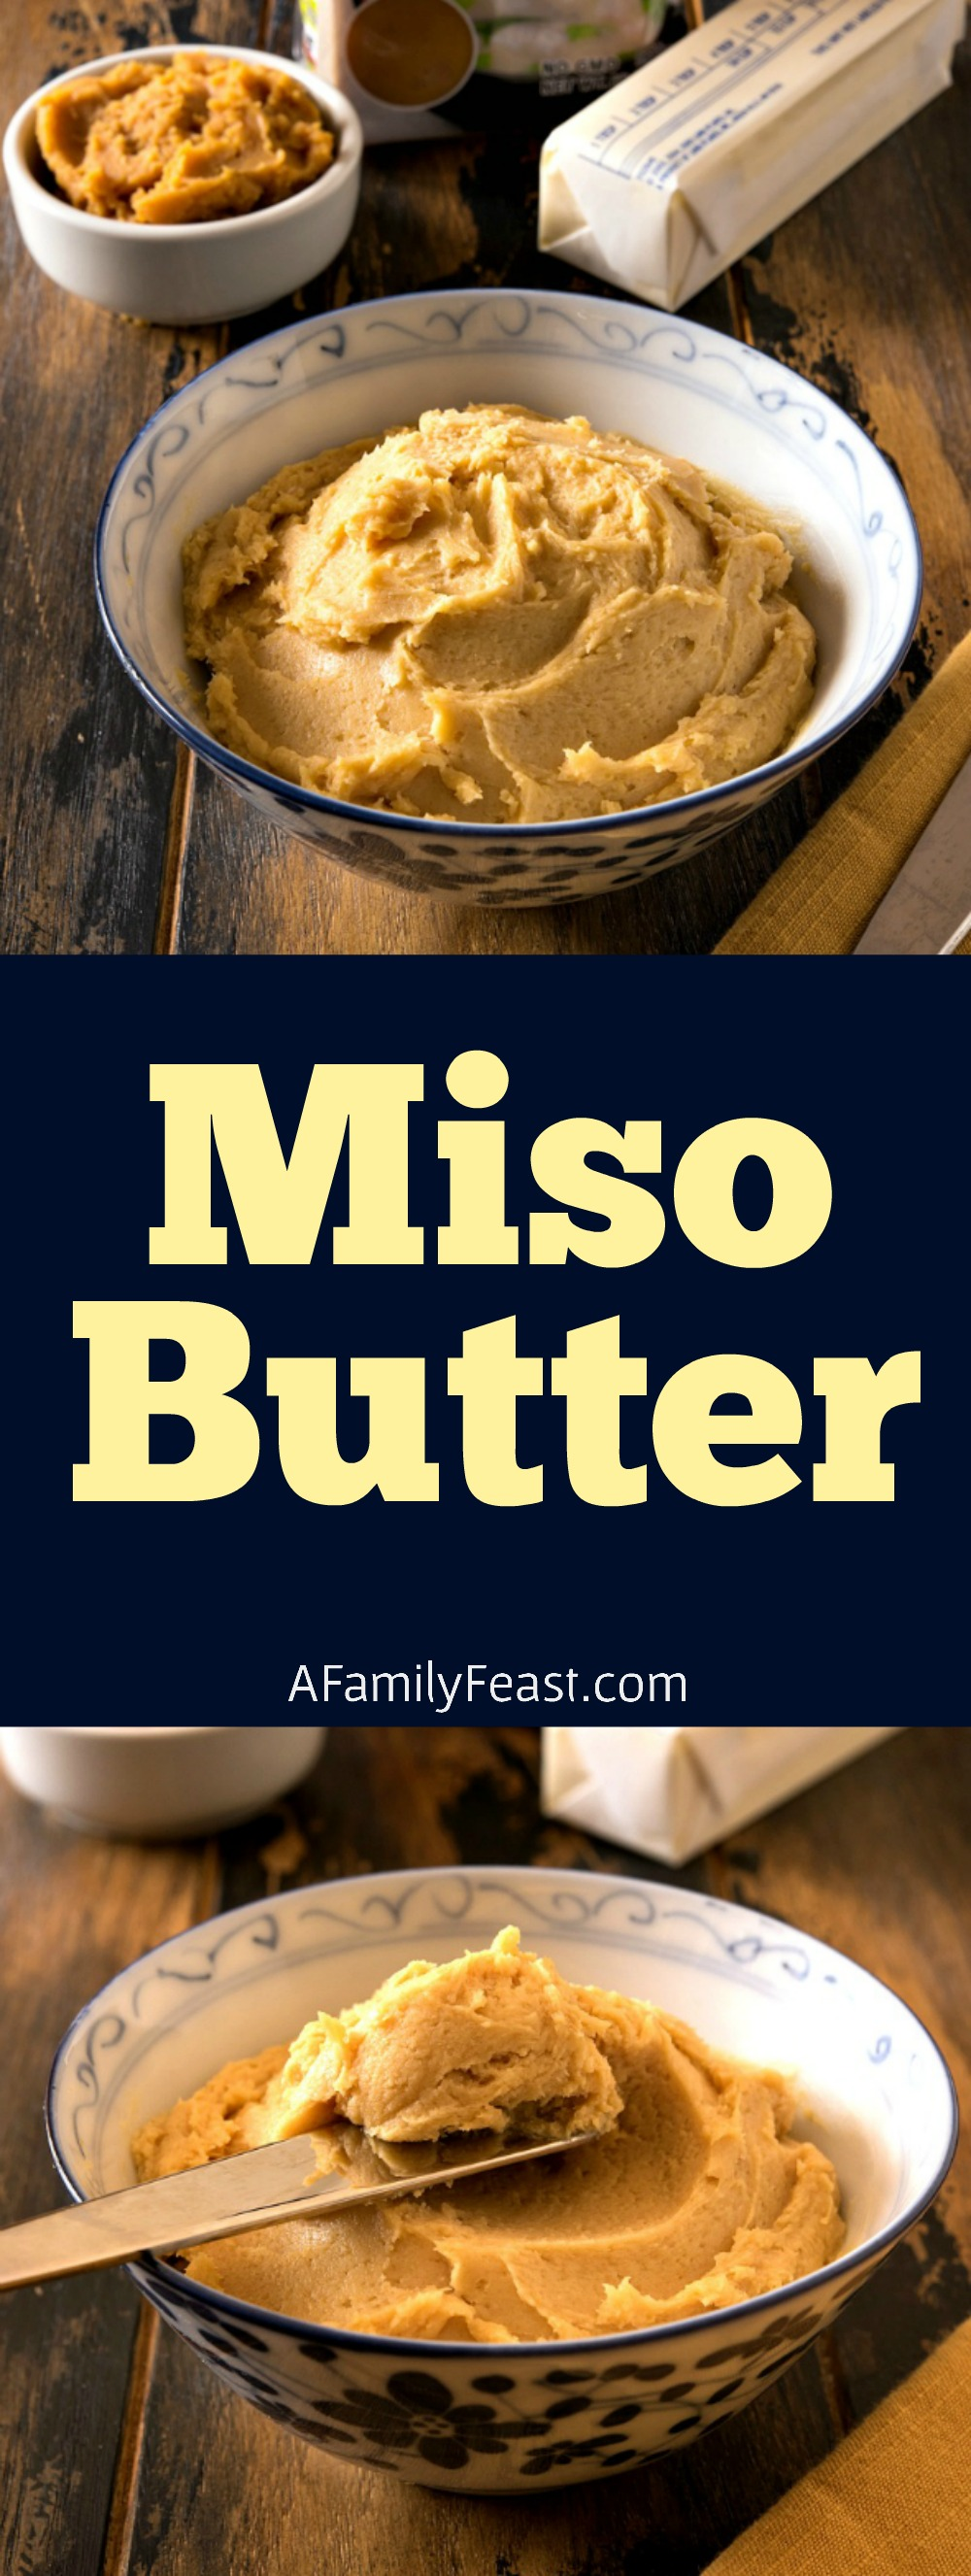 How to make homemade Miso Butter.